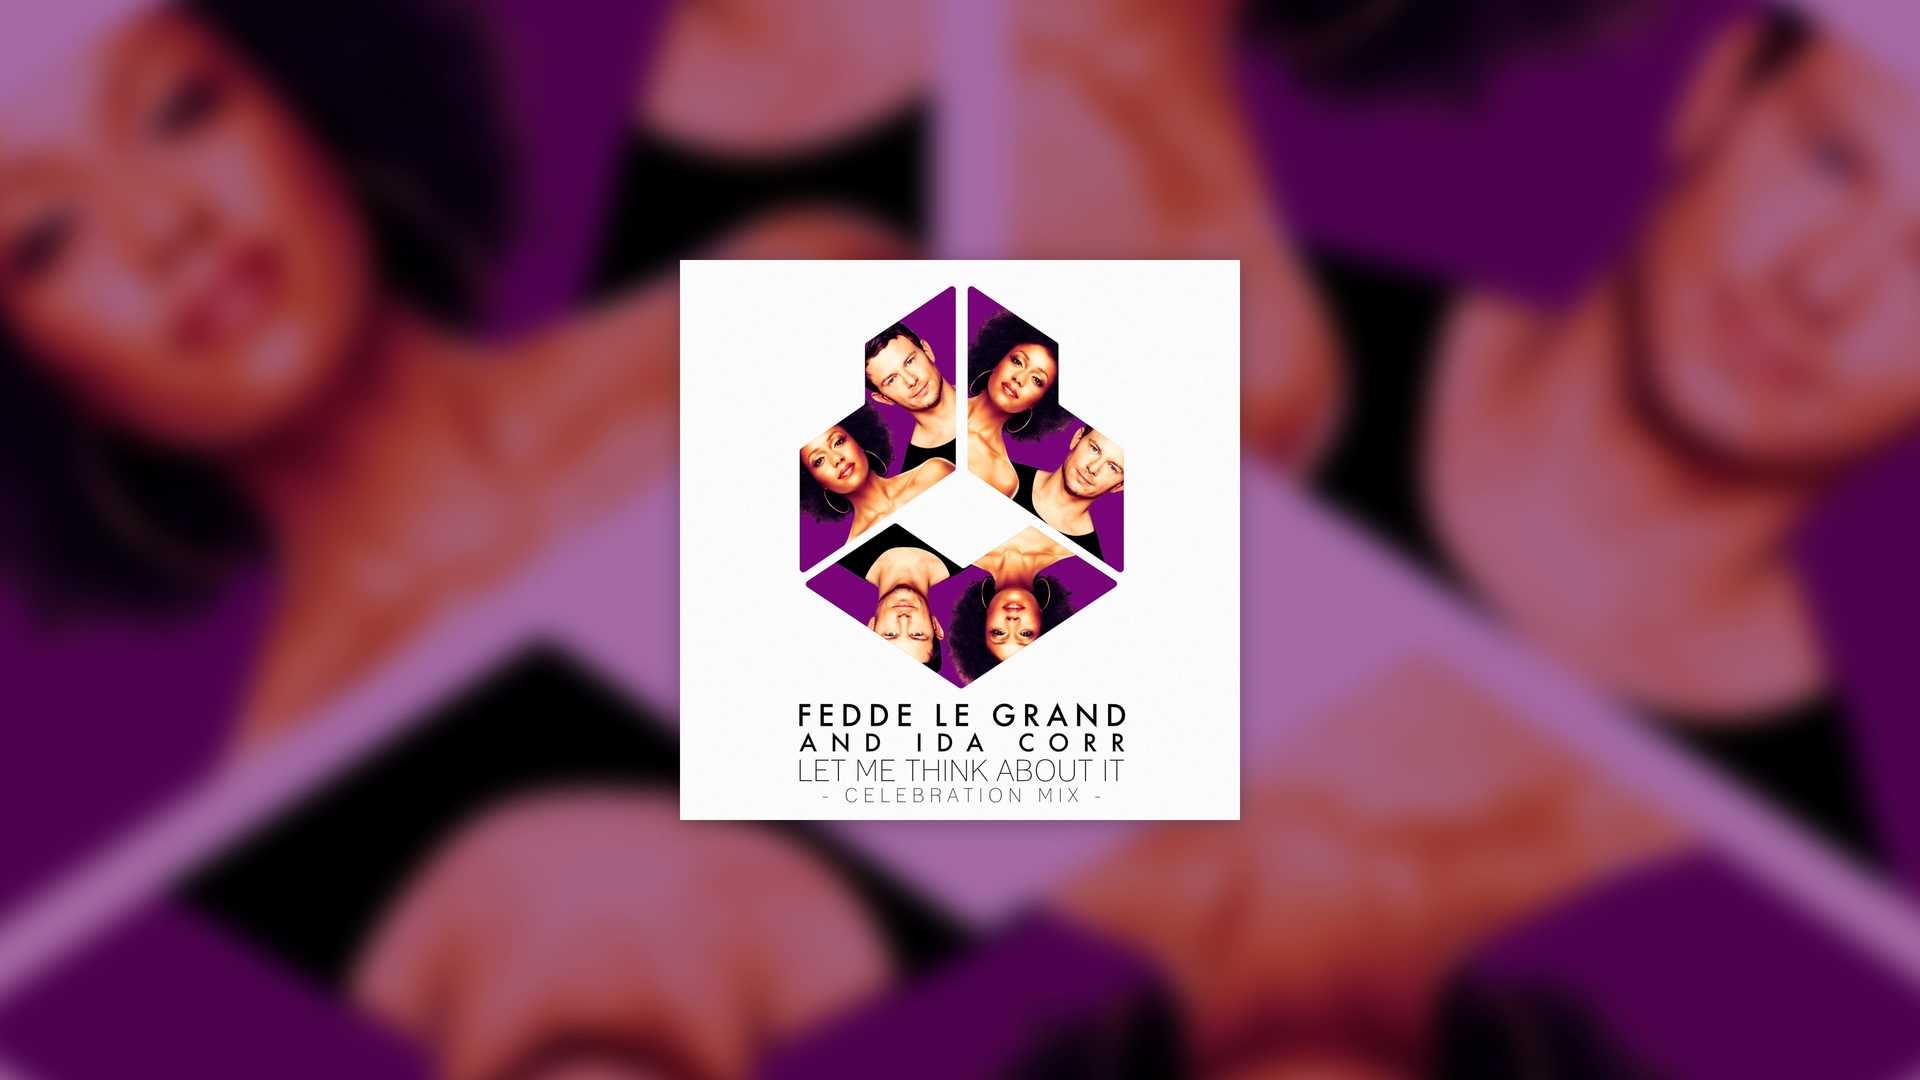 FEDDE LE GRAND AND IDA CORR - LET ME THINK ABOUT IT (CELEBRATION MIX) PRE-ORDER ON BEATPORT NOW